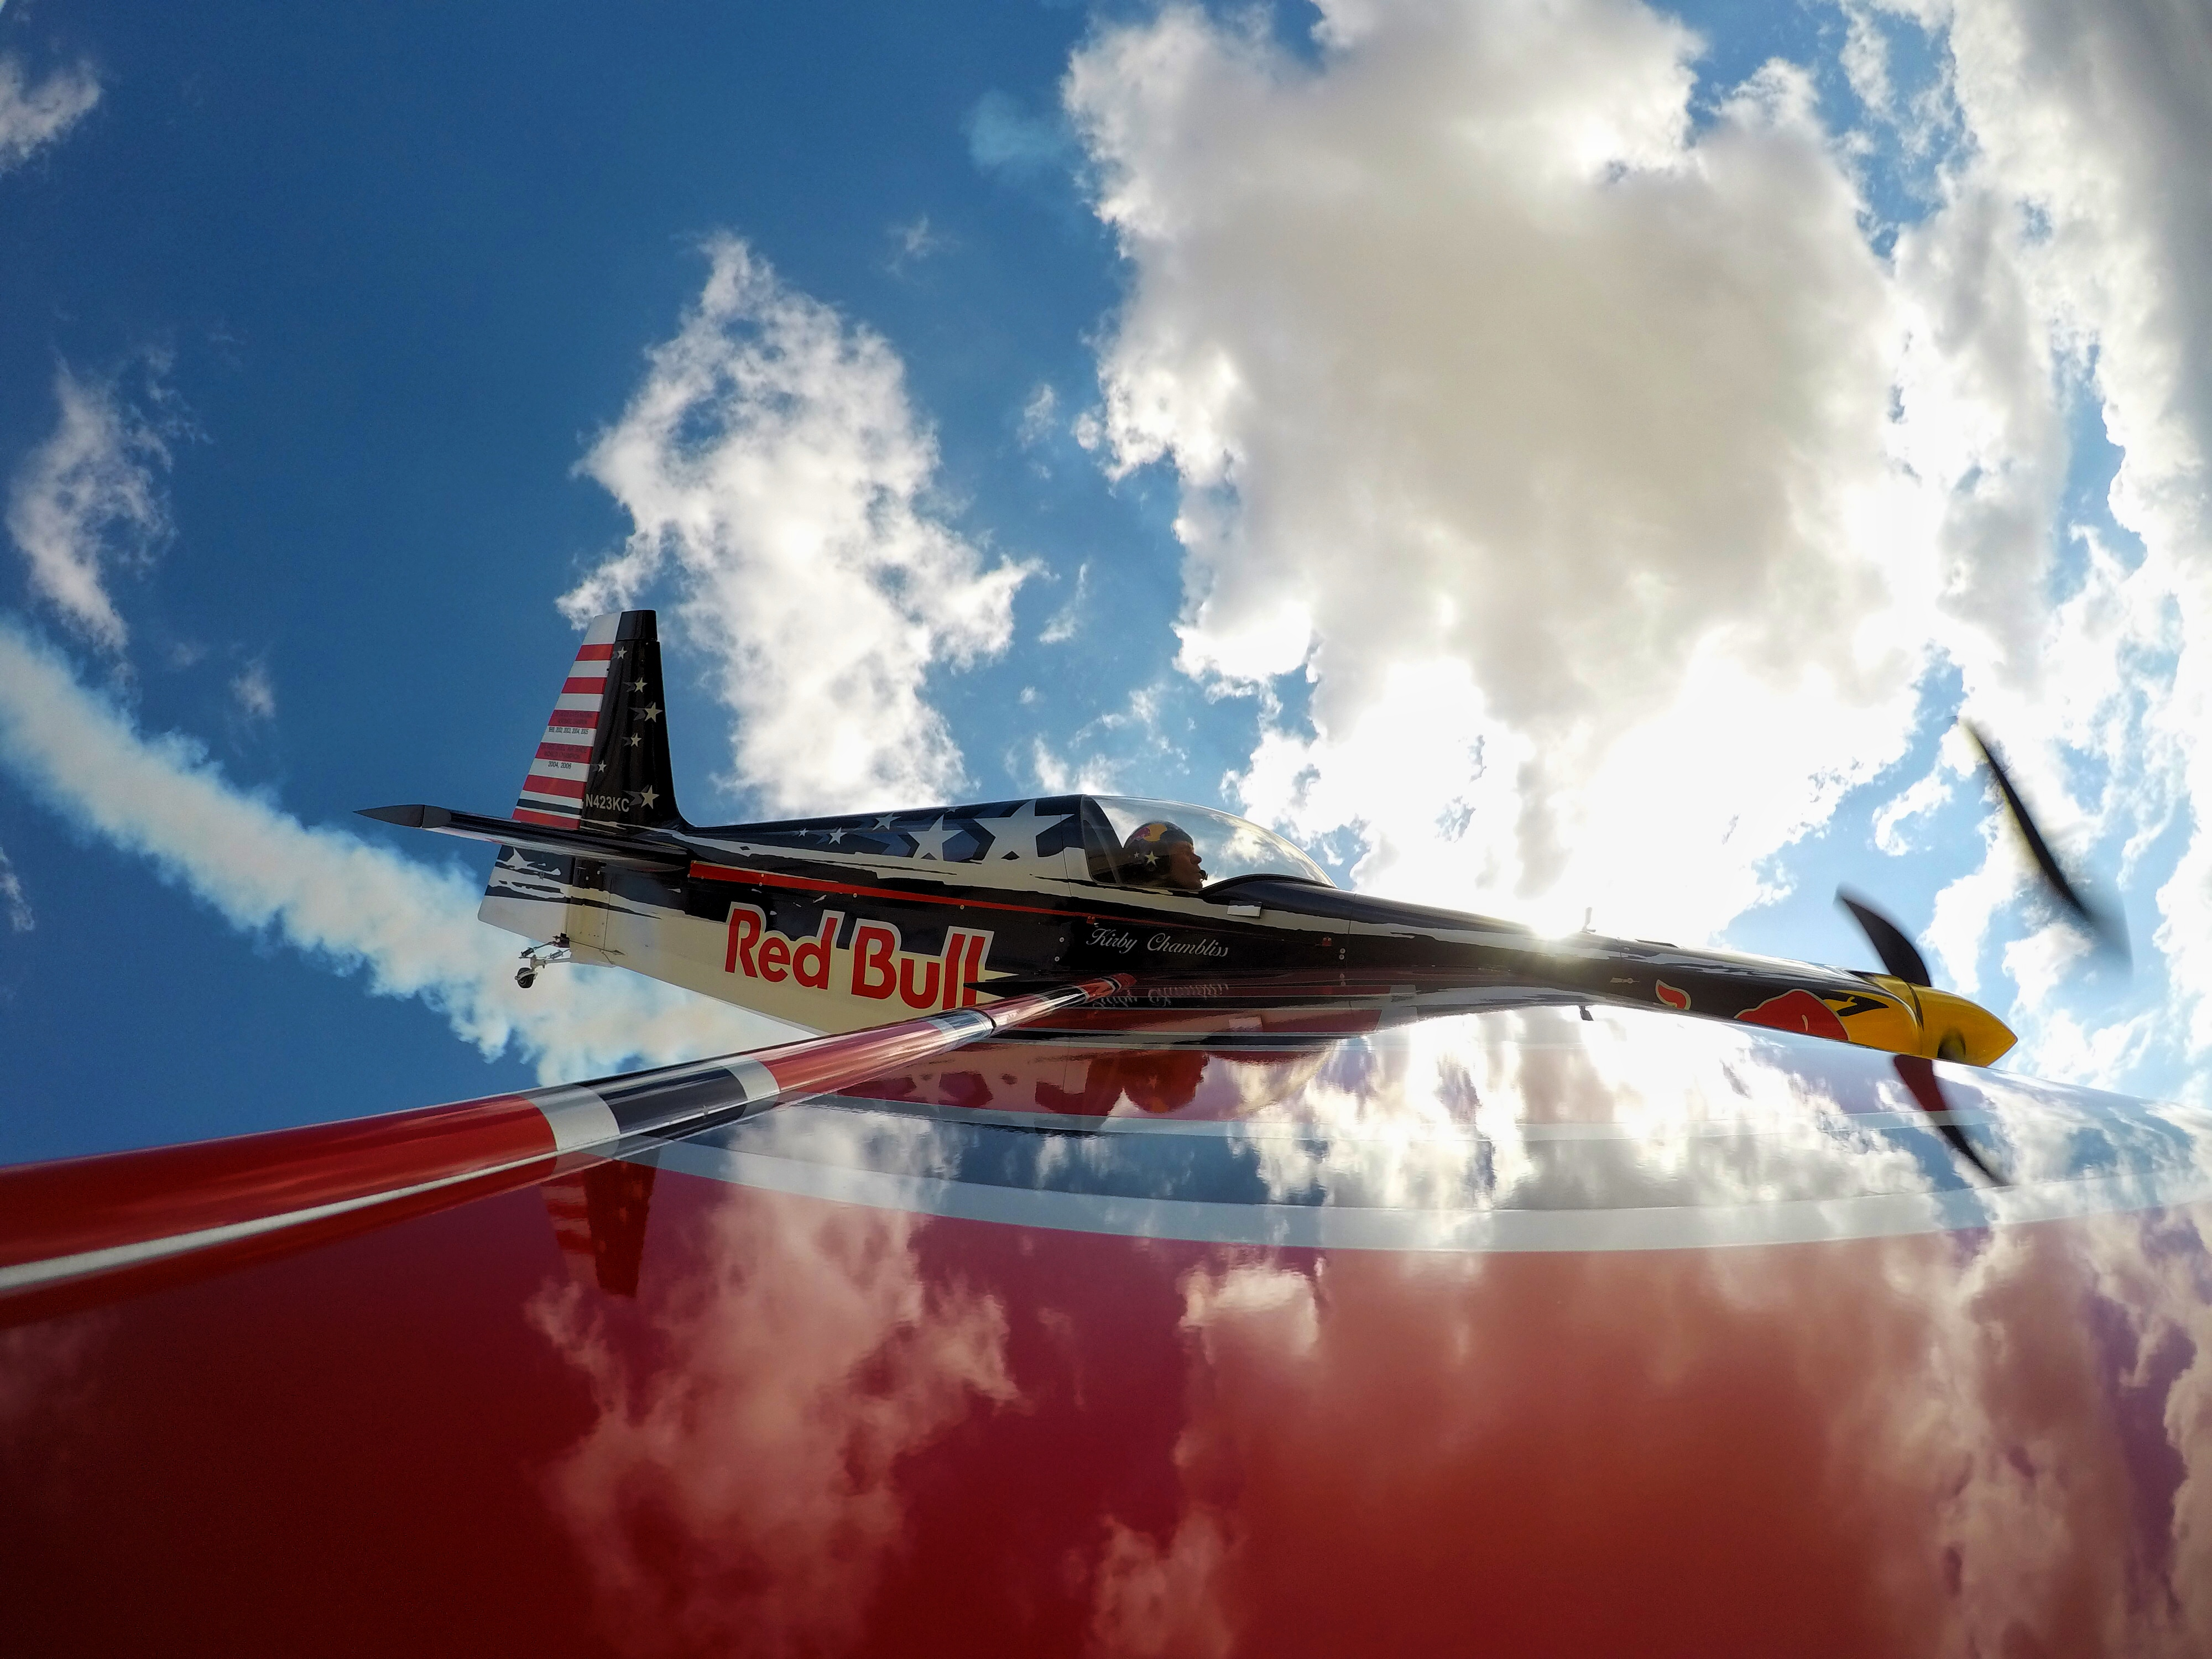 Team Chambliss: Red Bull Air Race Pilot » Photo of the Month!